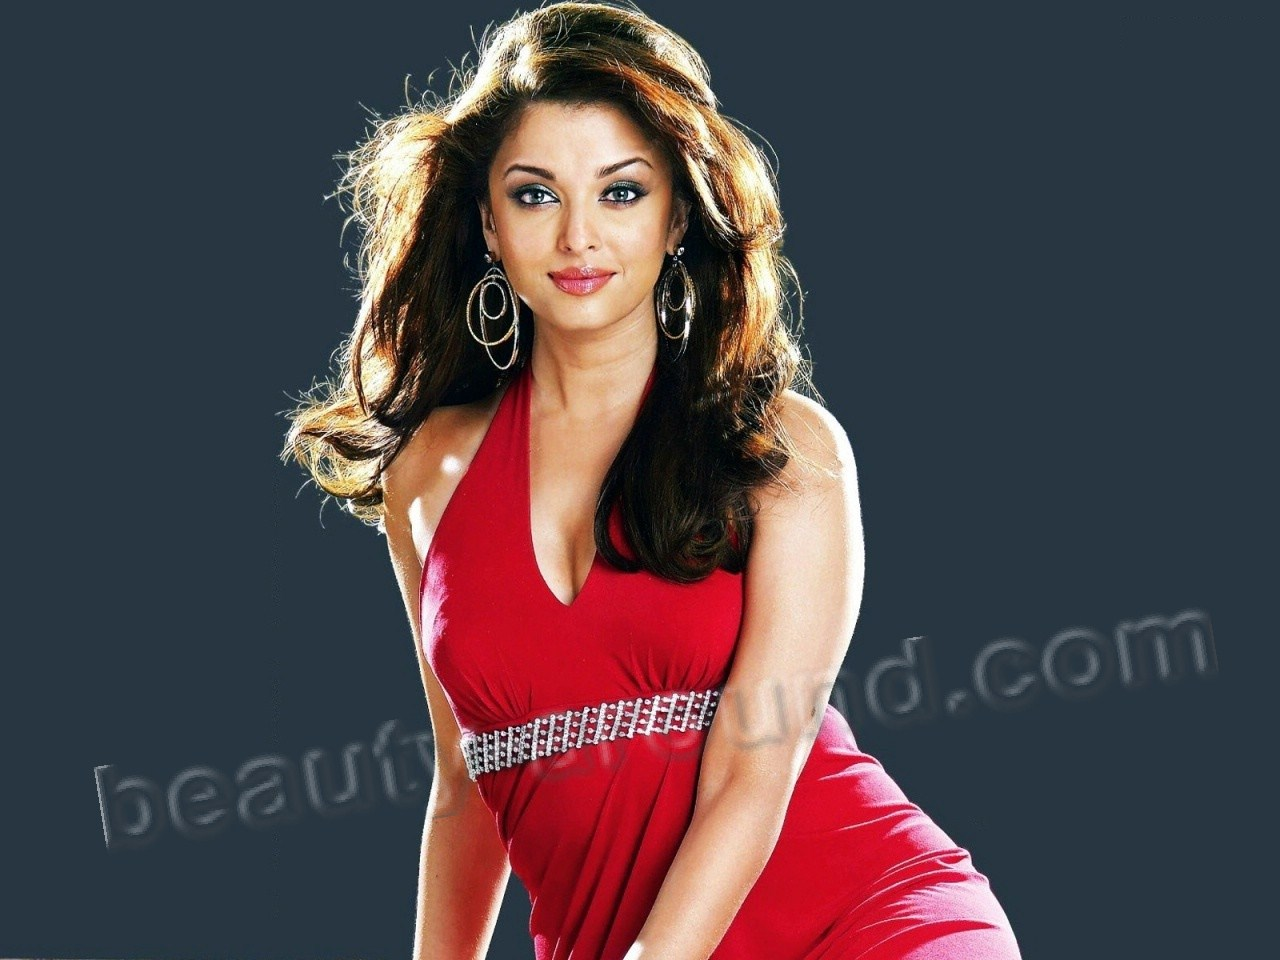 Aishwarya Rai beaty indian actress